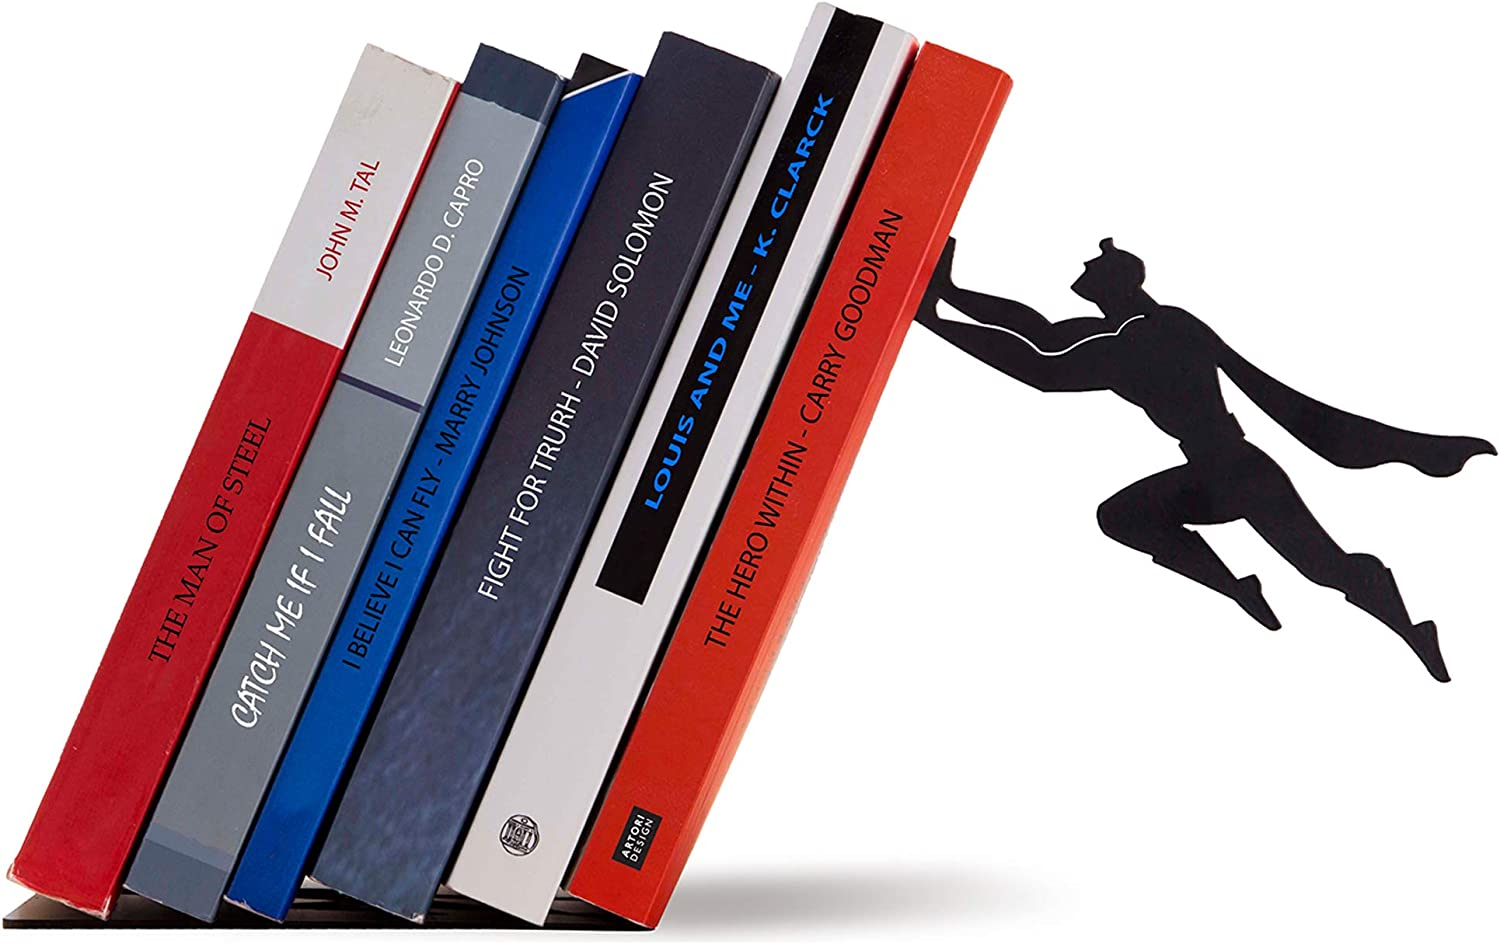 Black Metal Superhero Bookend